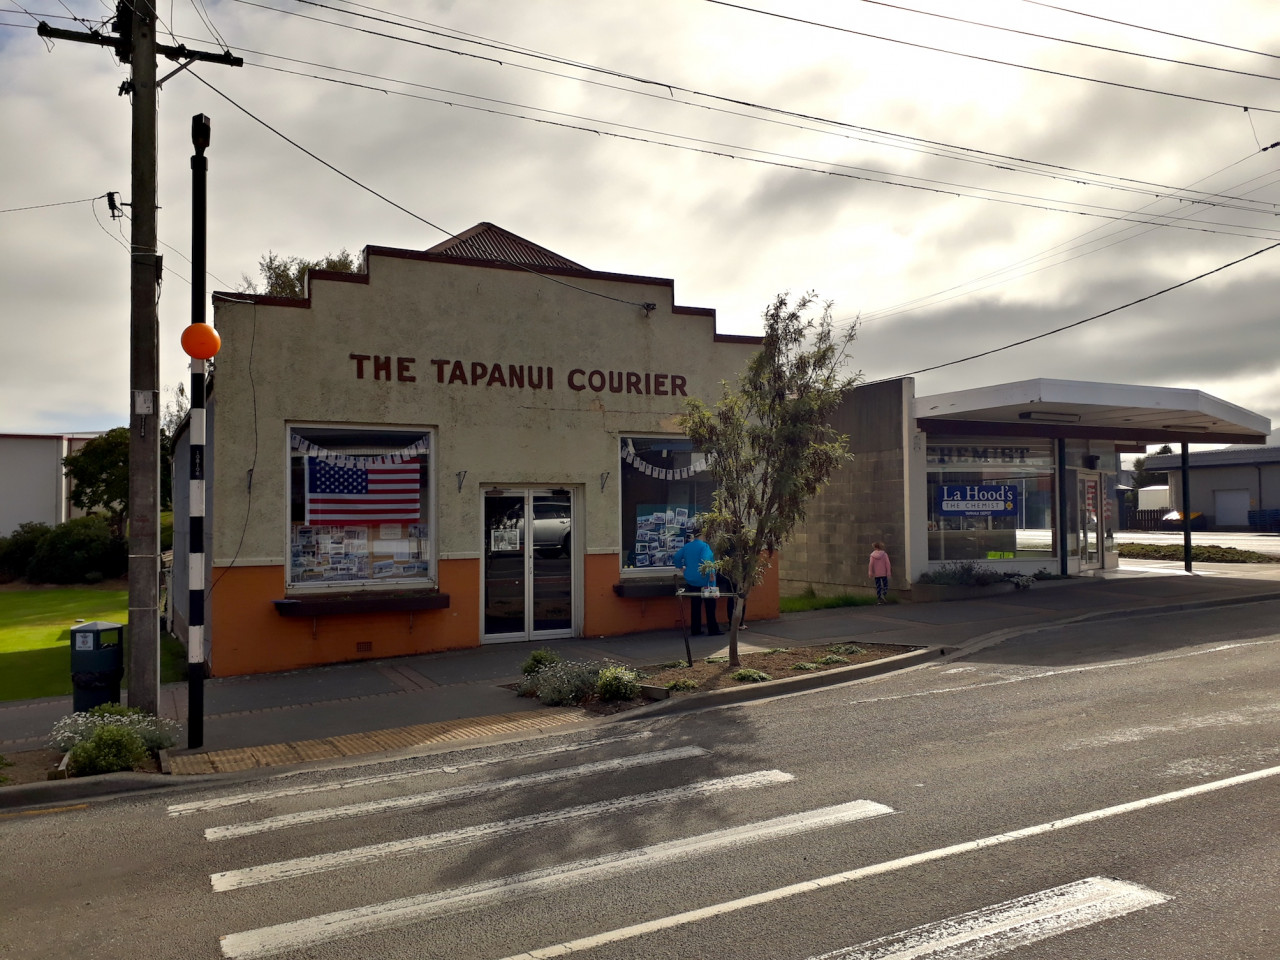 ...and the old Tapanui Courier building...